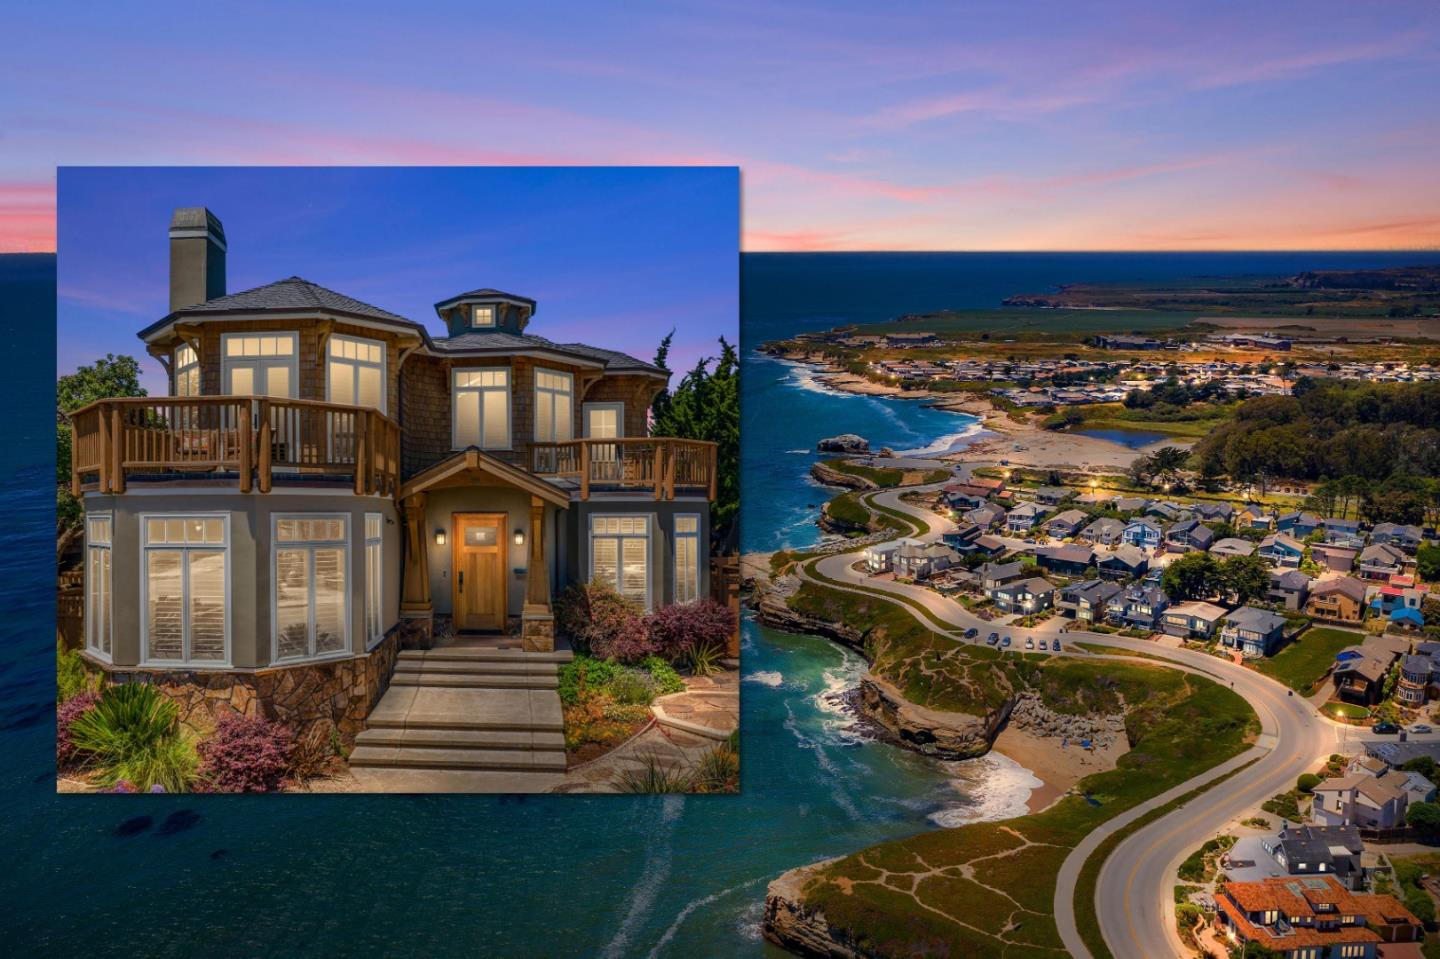 Your dream beach home awaits you! This stunning oceanfront home built by Meschi Construction in 2008 is truly one of a kind. 103 Auburn Avenue is an architectural masterpiece, an ode to classic elegance and a nautical craftsman aesthetic. Expansive windows offer sweeping ocean views and sparkling lights of the expansive Monterey Bay. Experience a daily display of sea life, from otters, seals, dolphins and humpback whales, from the luxury of this unique home. Bordered by the Santa Cruz Municipal Wharf and Natural Bridges State Beach, and fronted by the Monterey Bay, West Cliff is an oasis within the city. Major Price Reduction!